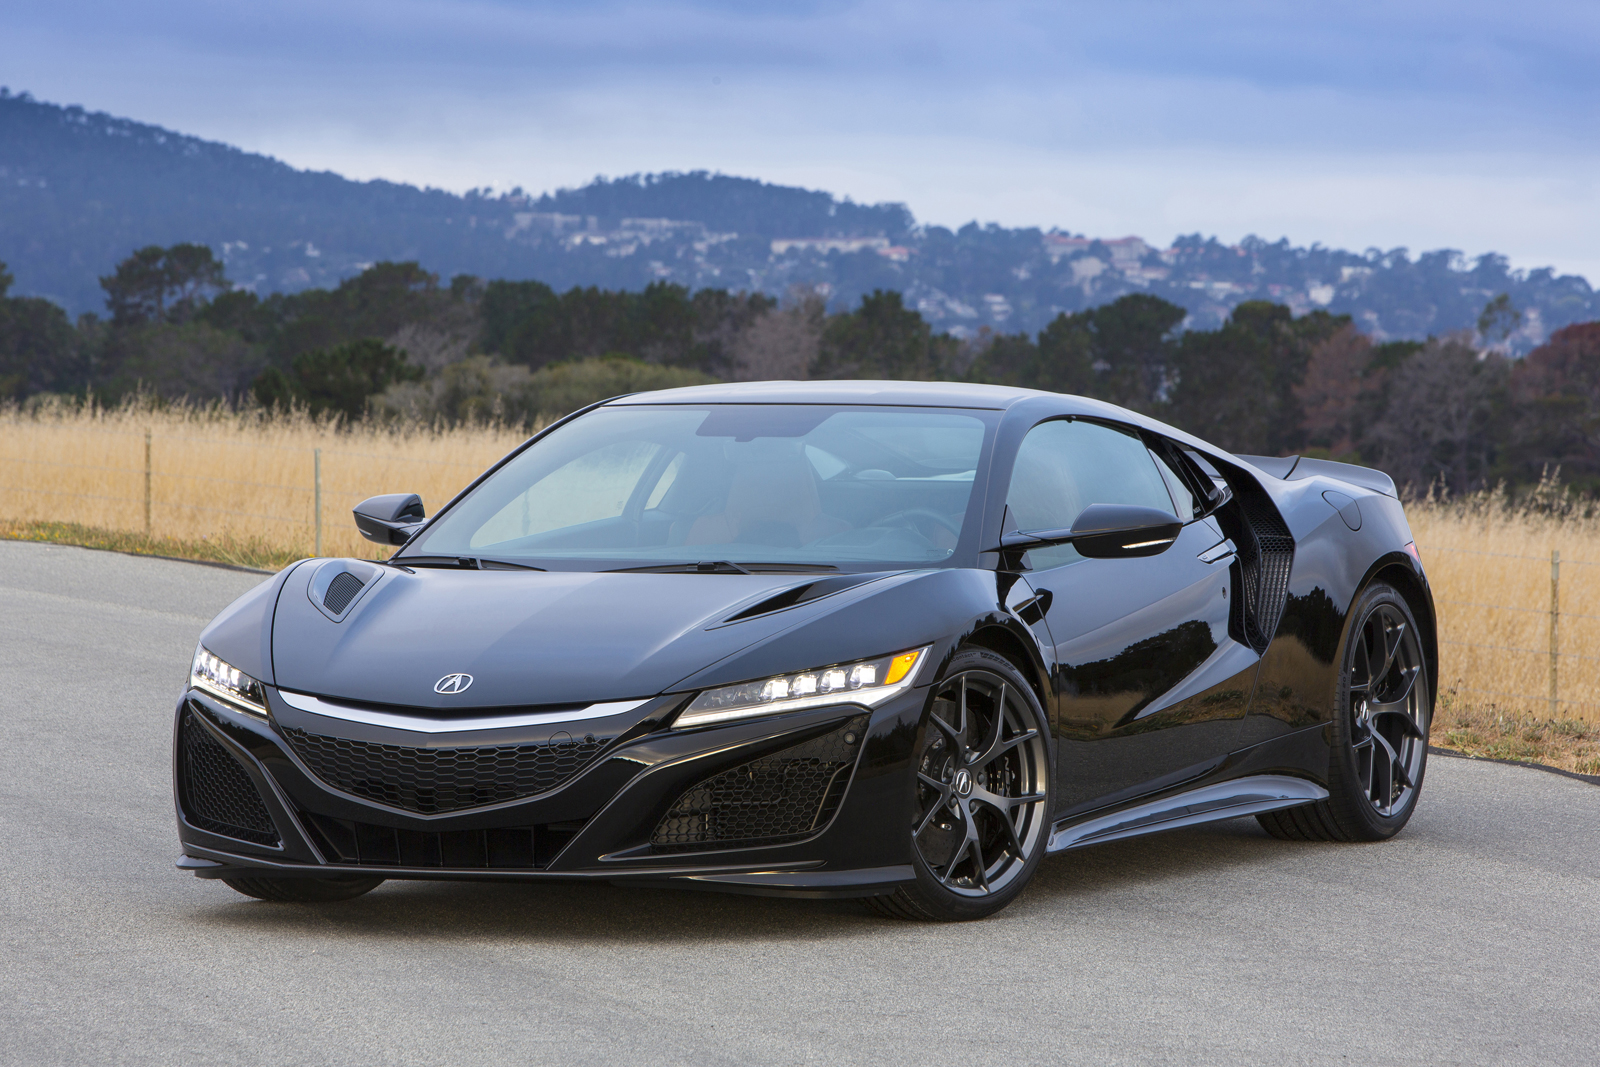 2017 Acura Nsx Features 573 Hp Arriving Spring 2016